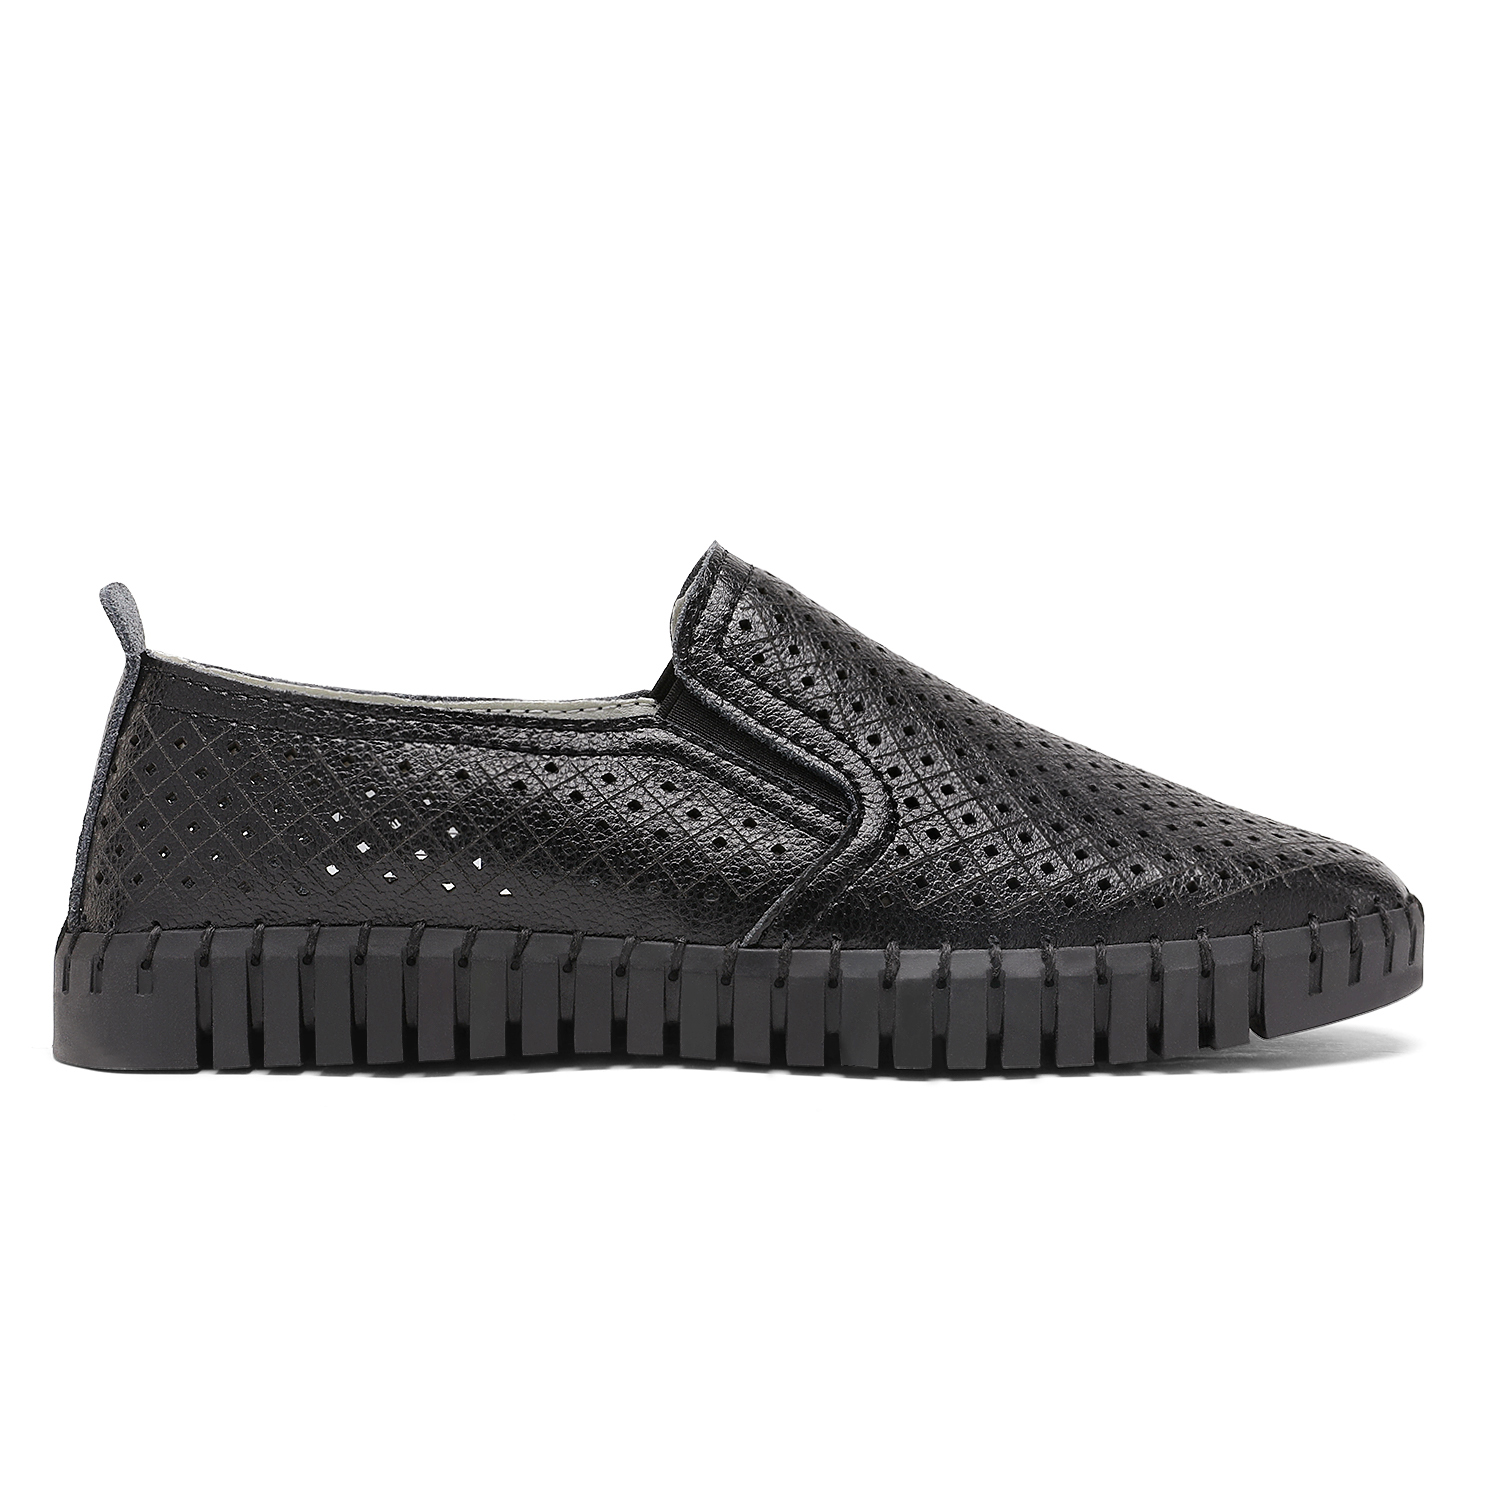 DREAM-PAIRS-Women-s-Breathable-Sneaker-Slip-On-Loafers-Comfortable-Flat-Shoes thumbnail 3